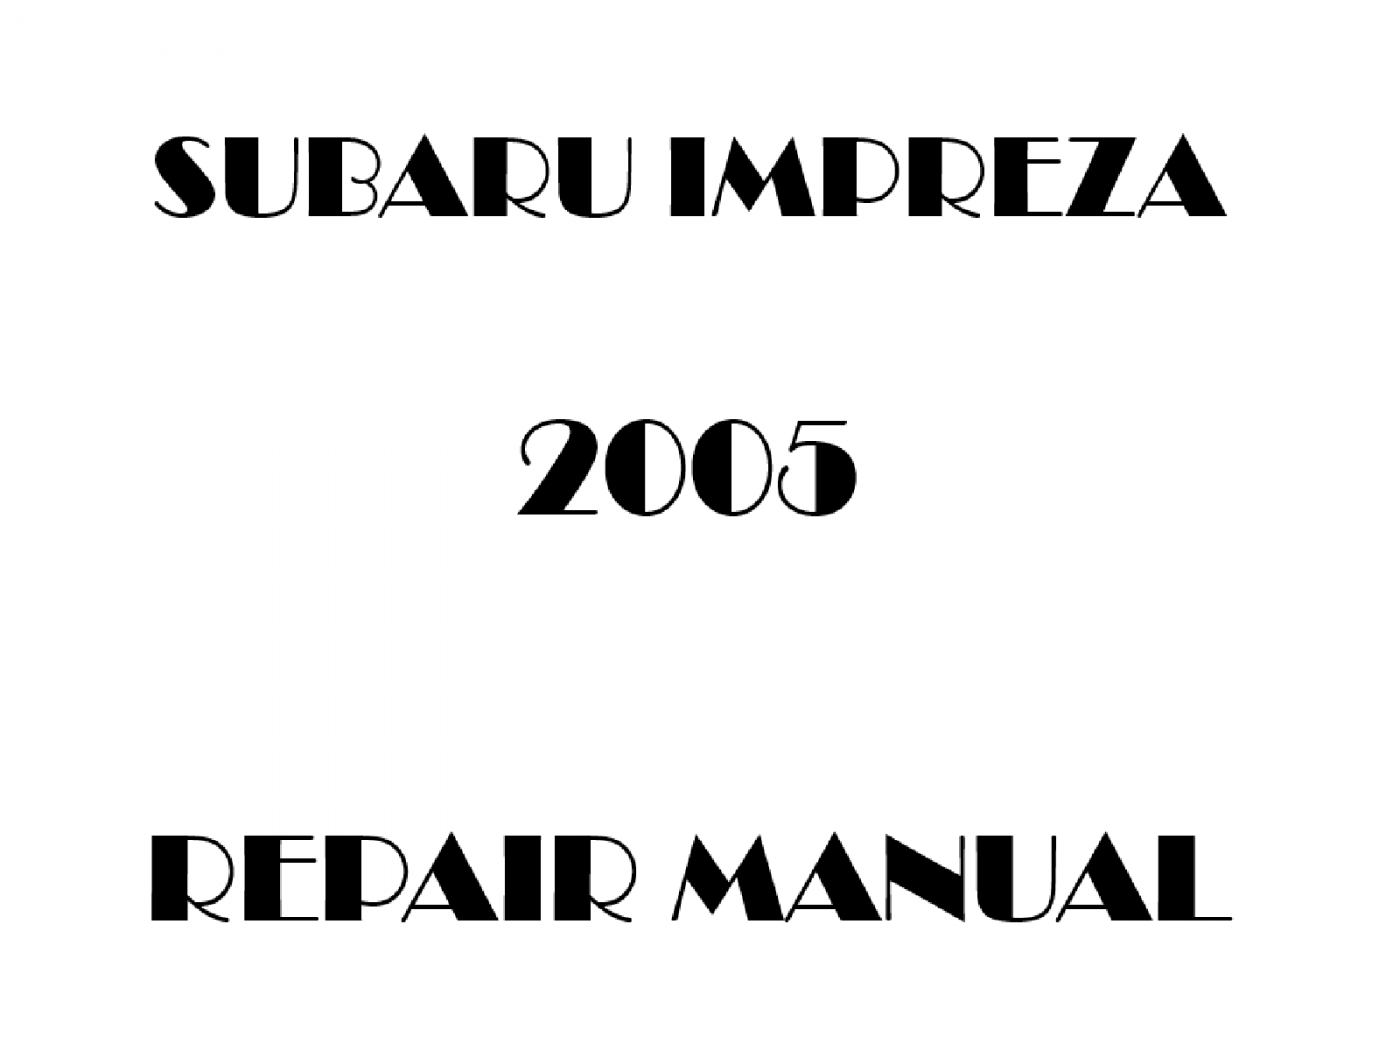 2005 Subaru Impreza repair manual